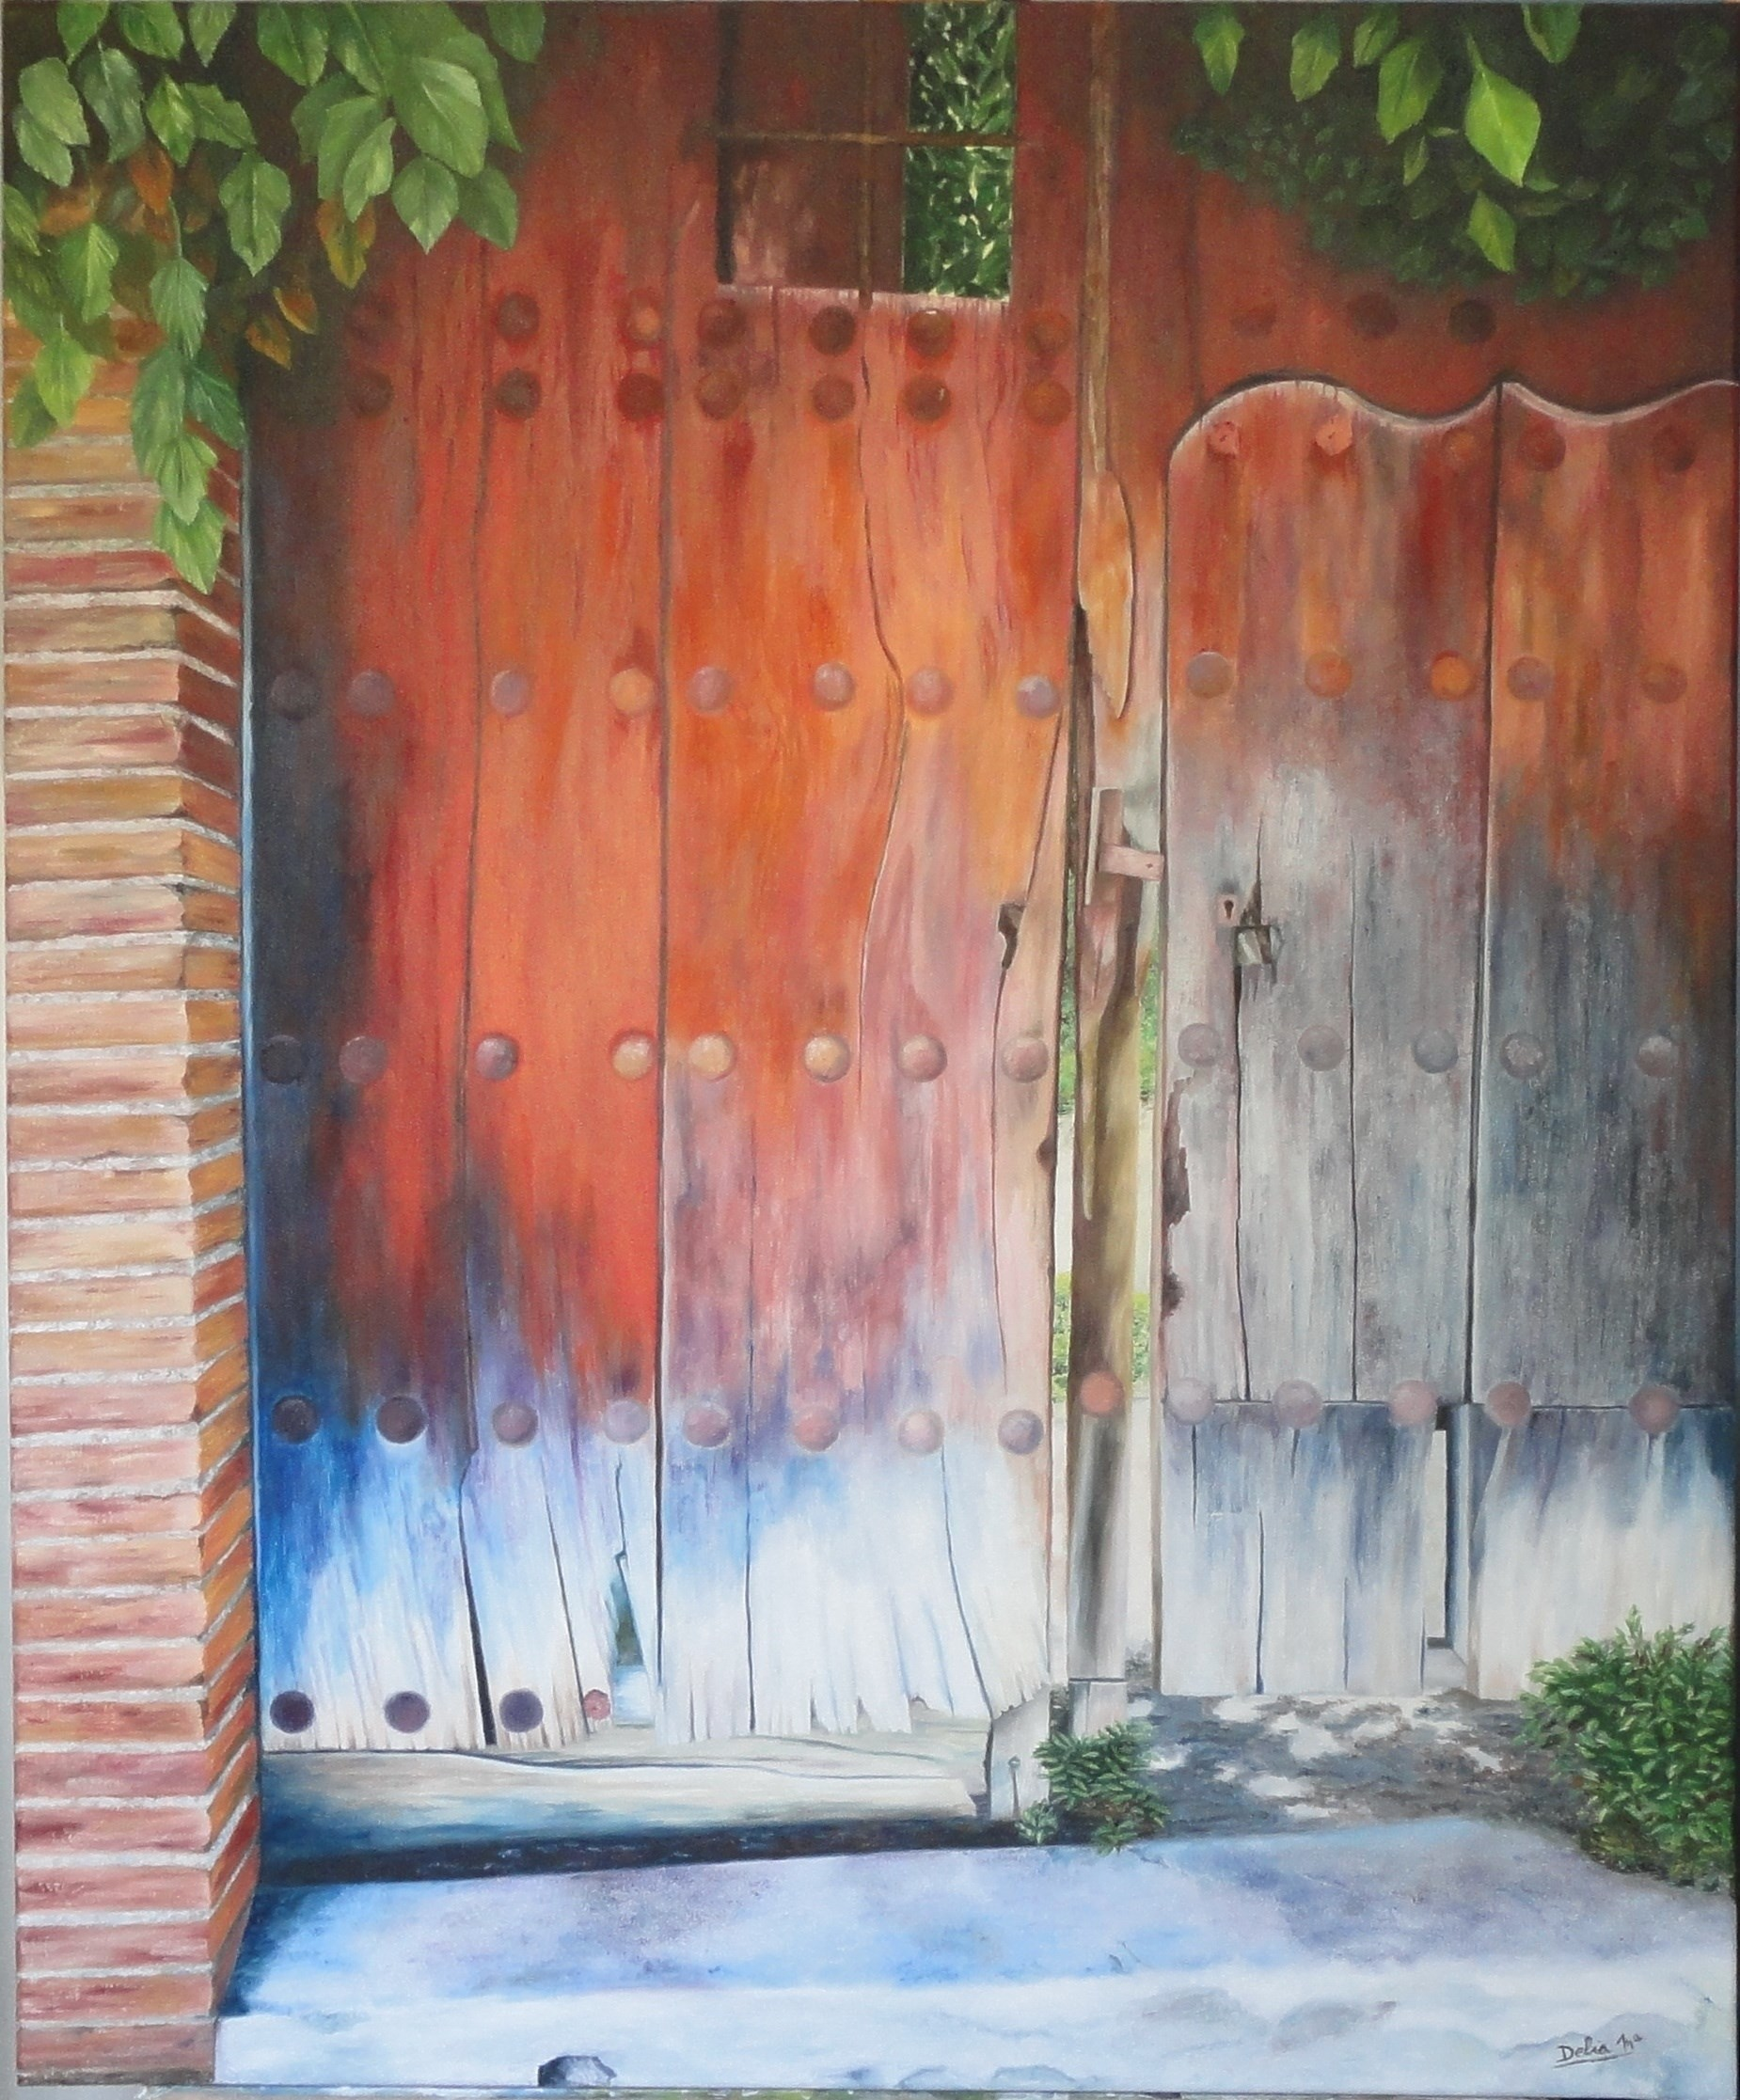 PUERTA DEL MAYORAZGO, original Places Canvas Painting by DELIA MARIA DELGADO GARCIA